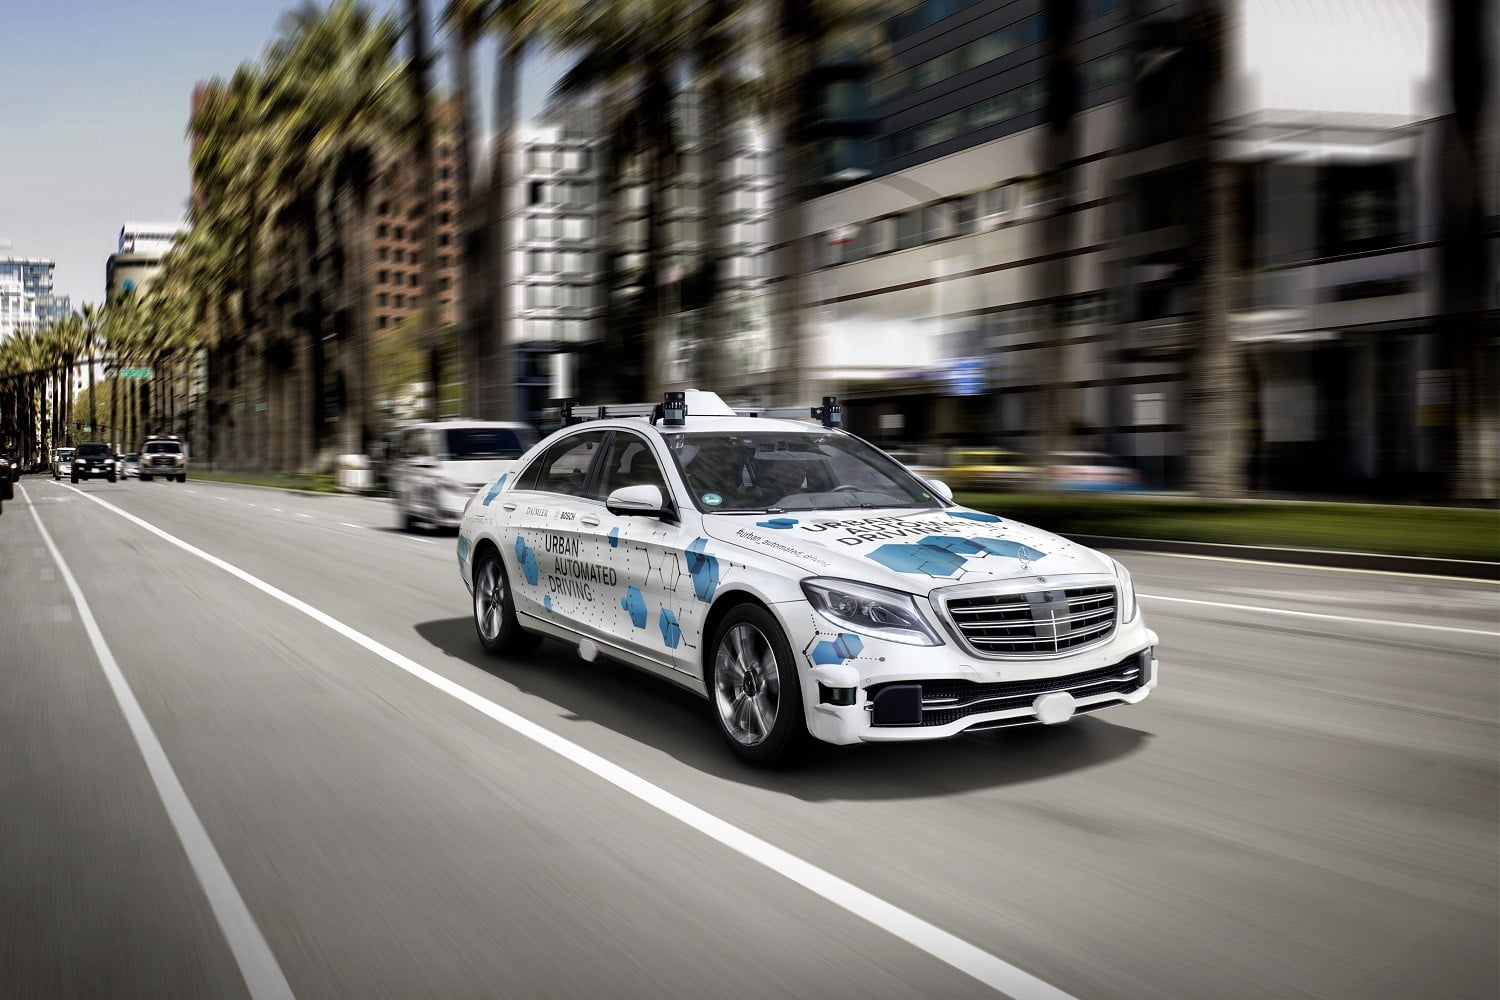 Daimler is taking a 'reality check' on self-driving cars over safety challenges